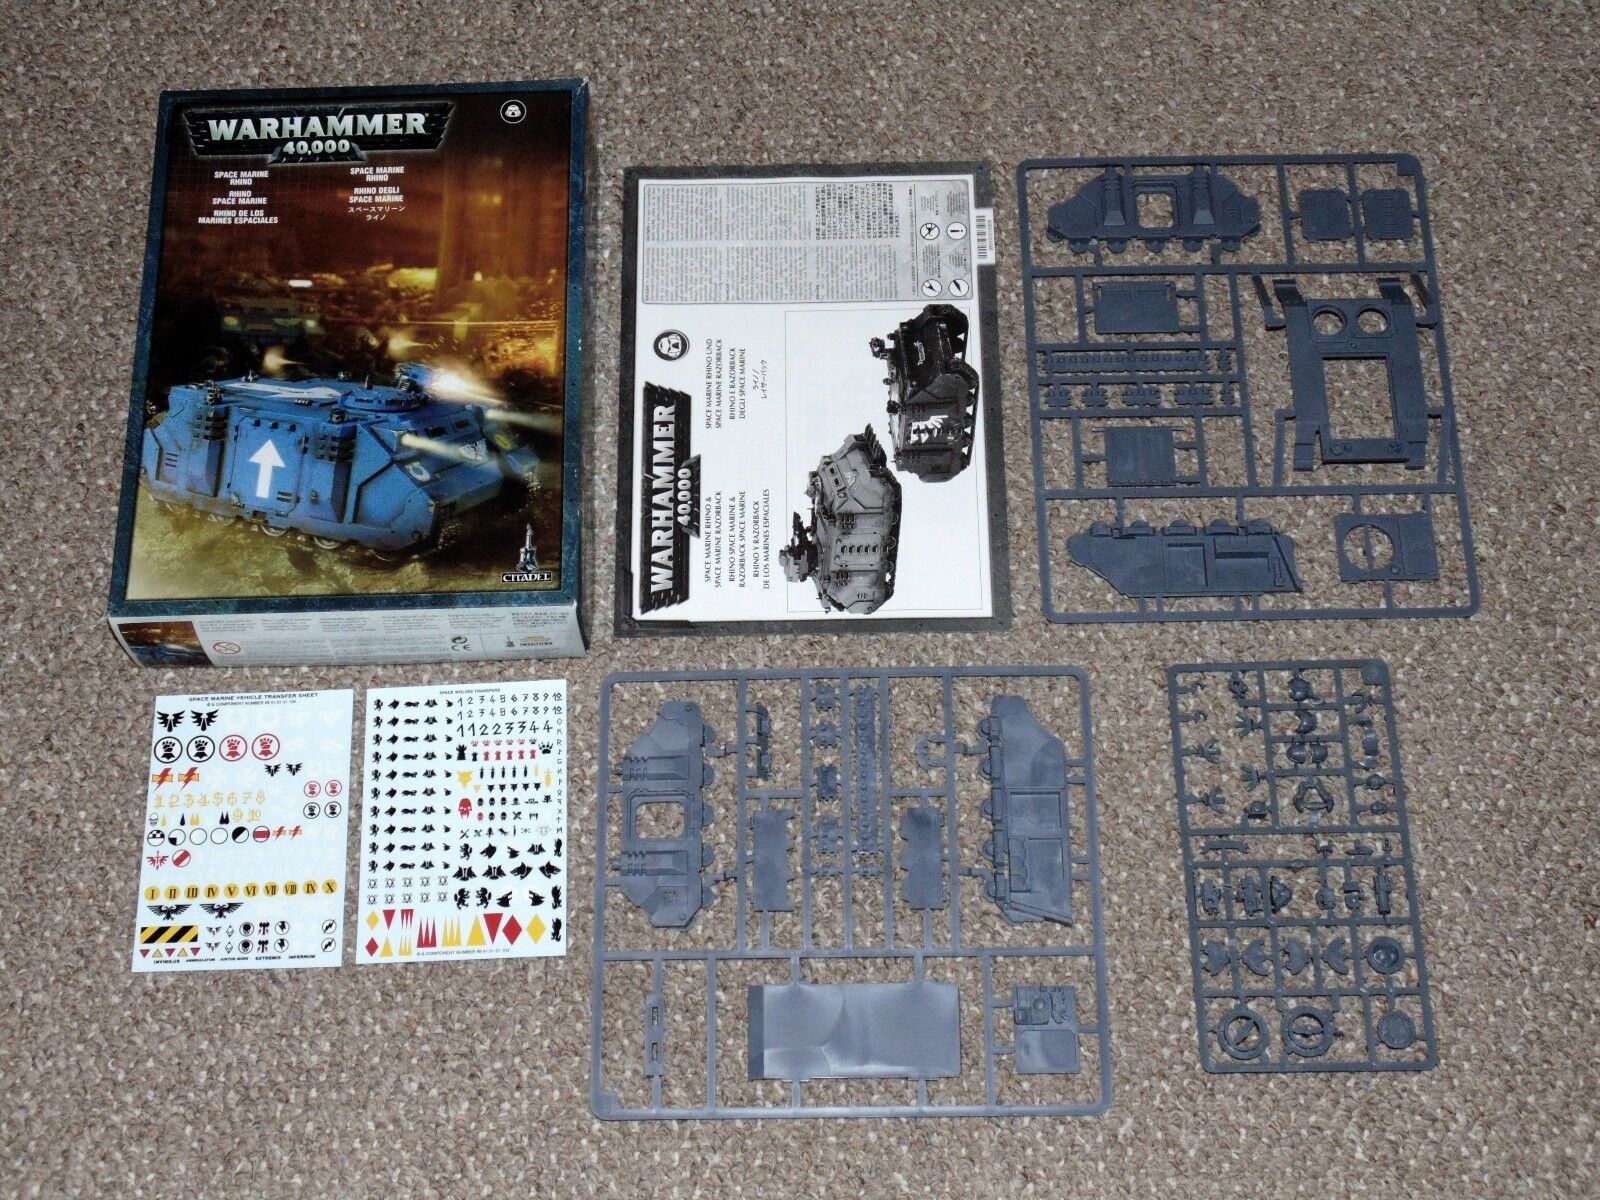 2007 Games Workshop Warhammer 40K Space Marine Rhino New in Box Unassembled